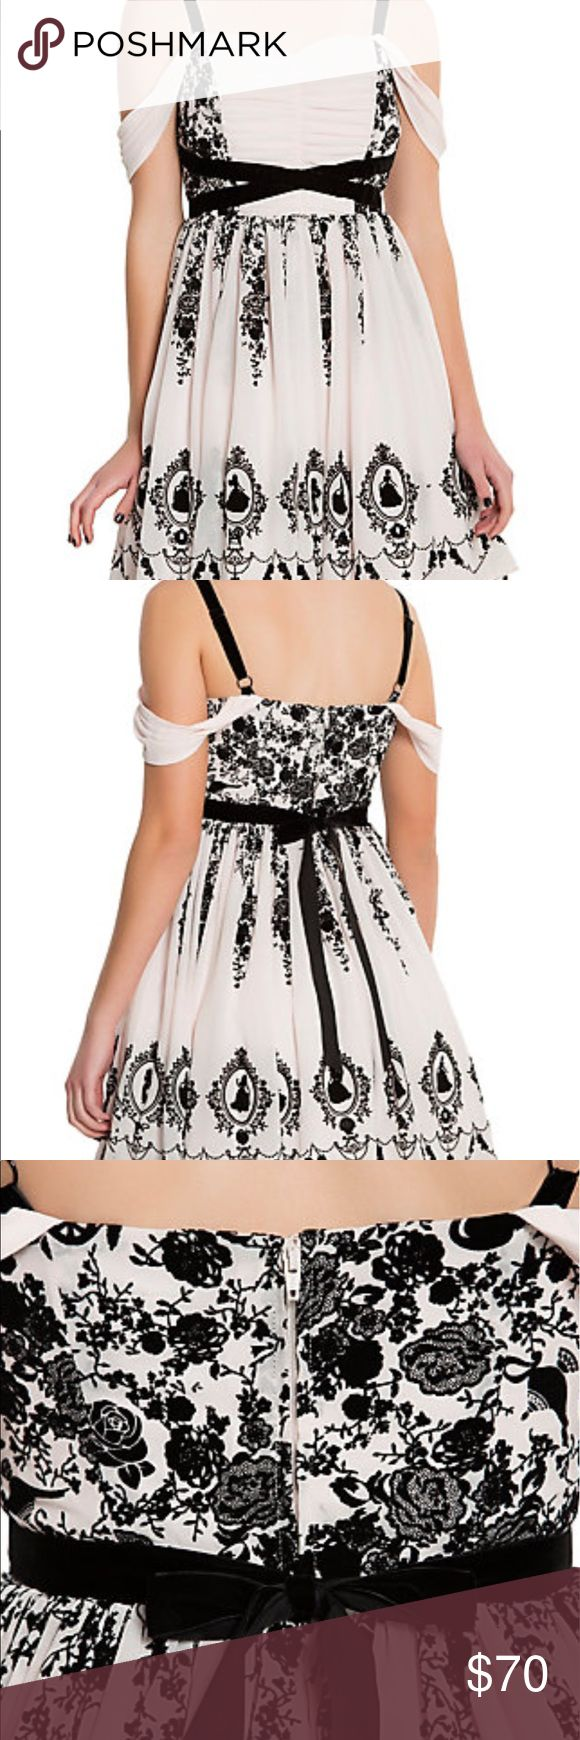 HOTTOPIC Disney cold shoulder prom dress NWT A brand new dress I impulsively bought that I don't need. Perfect for formal occasions such as prom or a wedding. Gorgeous dress, I haven't even removed it from the bag. All items come from a smoke free home with pets, meaning there may be a bit of dog hair. Can be washed if requested, but all clothes are clean. Trades will be considered but I'm very picky. All items will be shipped on mondays, wednesdays, and fridays. Nothing will be shipped on…